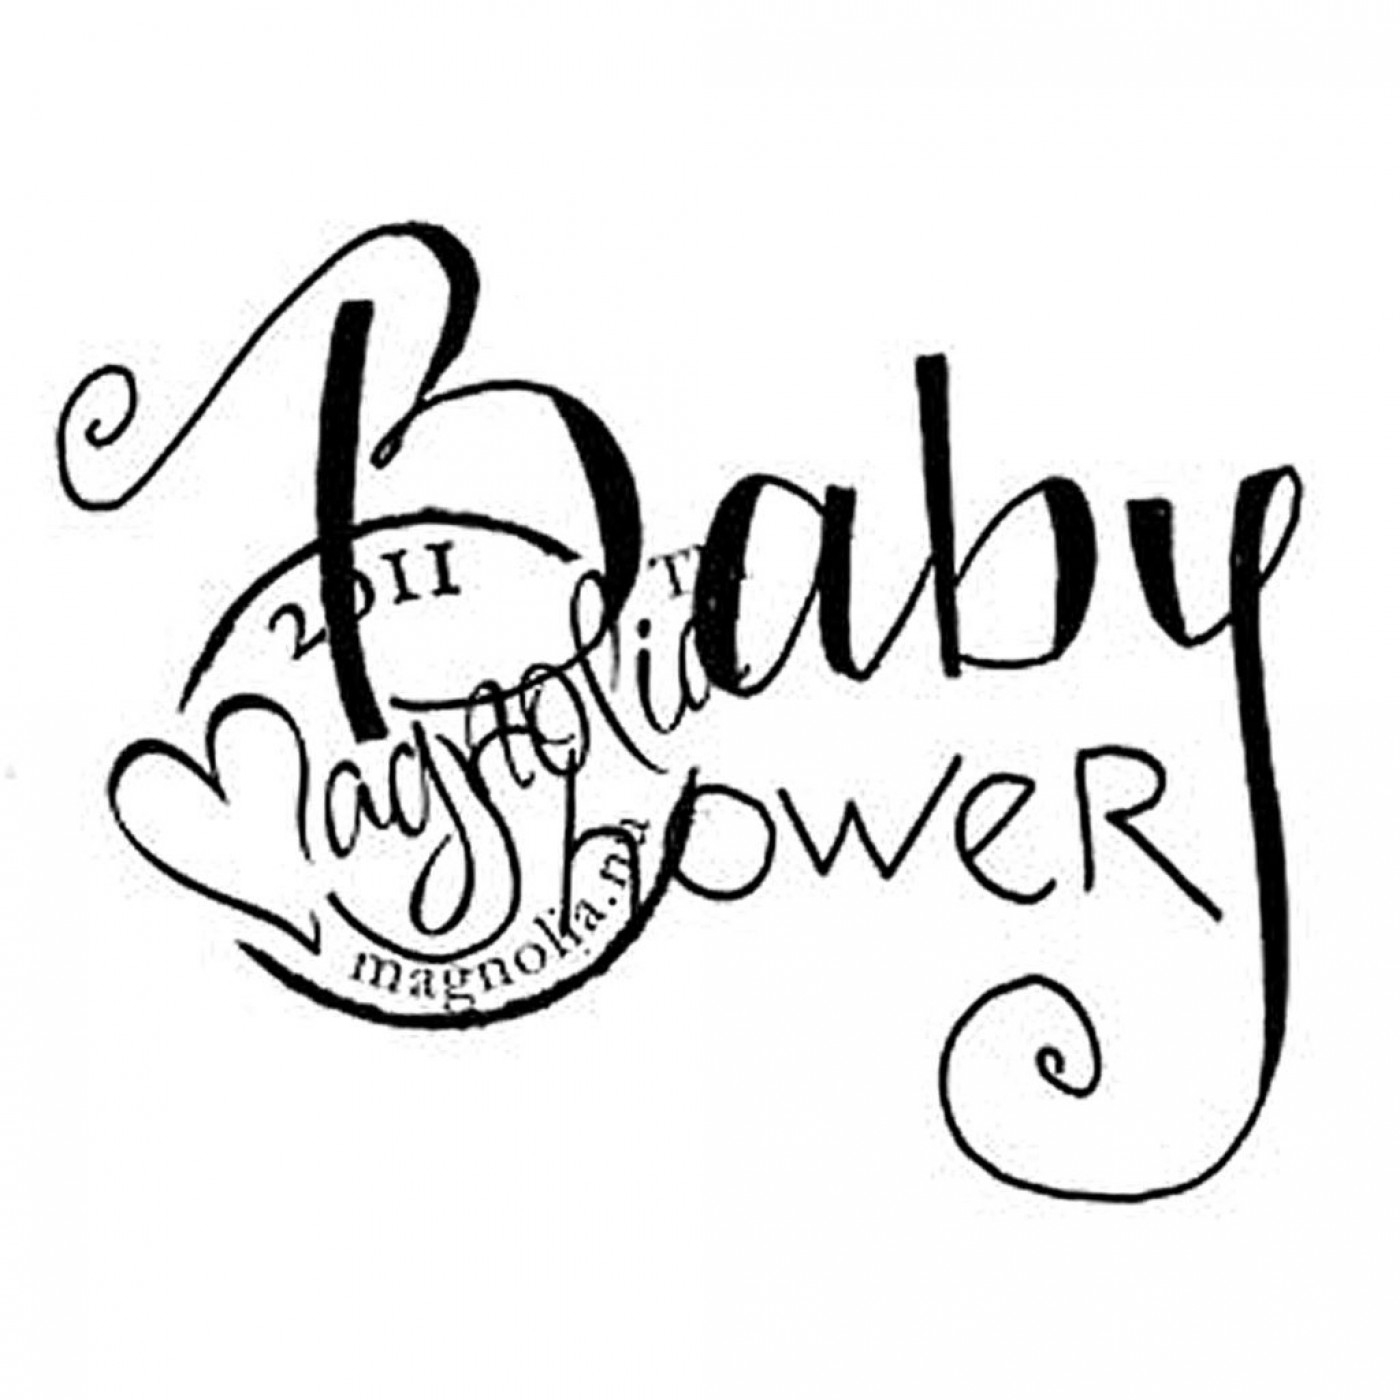 Baby Shower Coloring Pages Super Print Awful Free Printables - Free Printable Baby Shower Coloring Pages